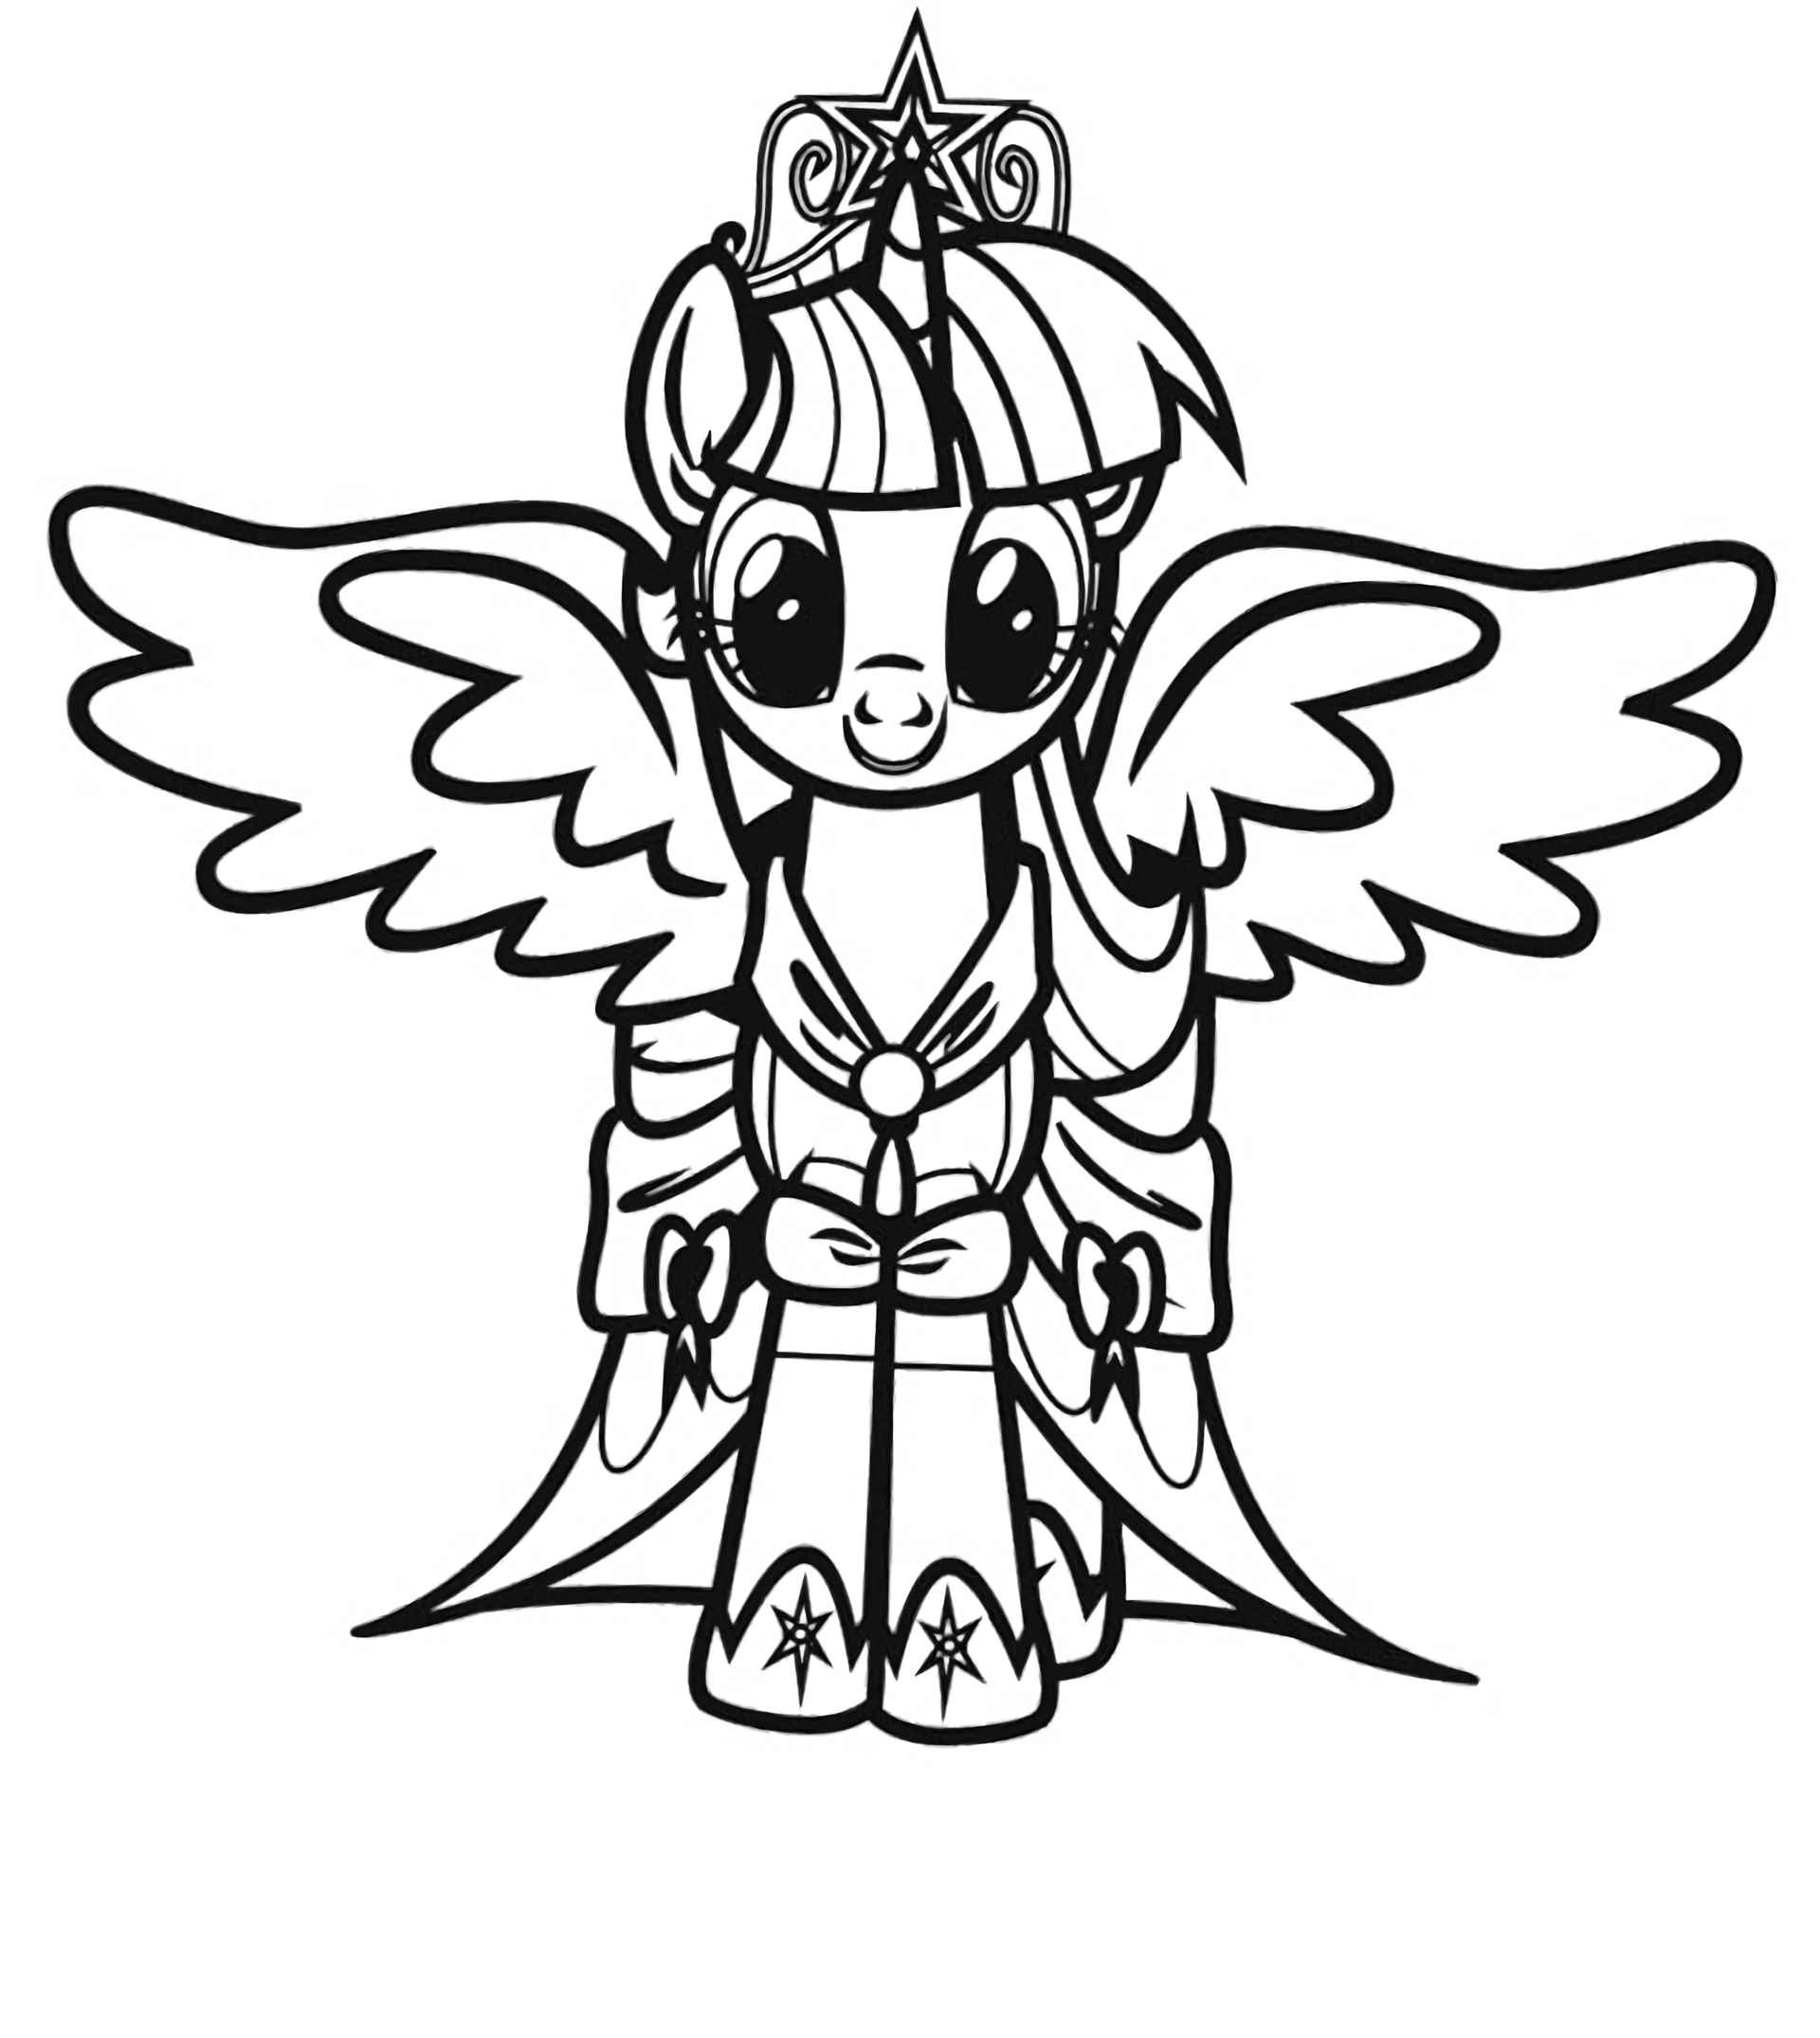 Coloring Sheet Princess Twilight With A Tiara At An Important Event